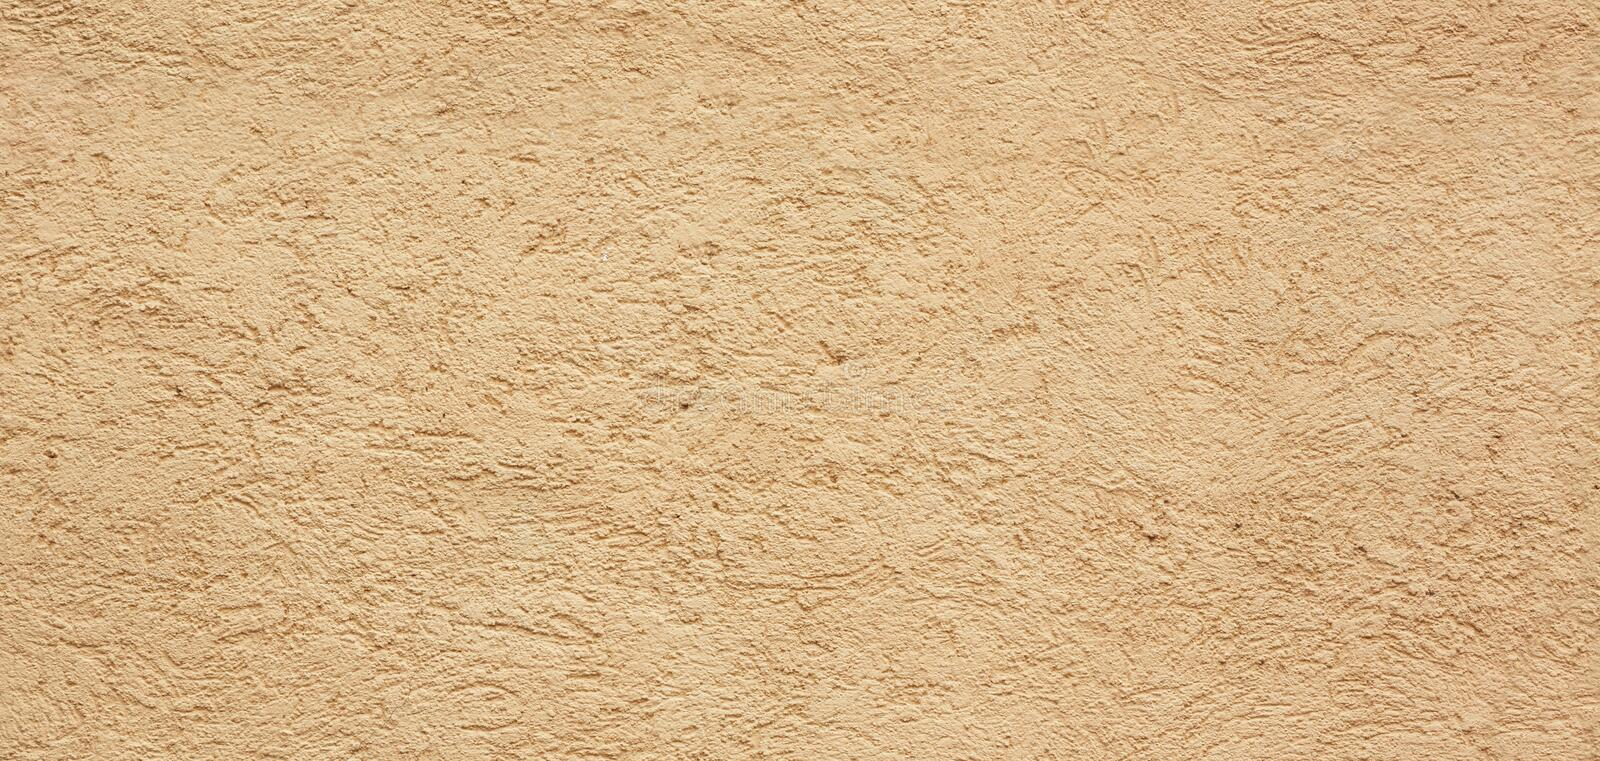 Yellow Seamless Stucco Texture Stock Image Image Of Texture Surface 33953403